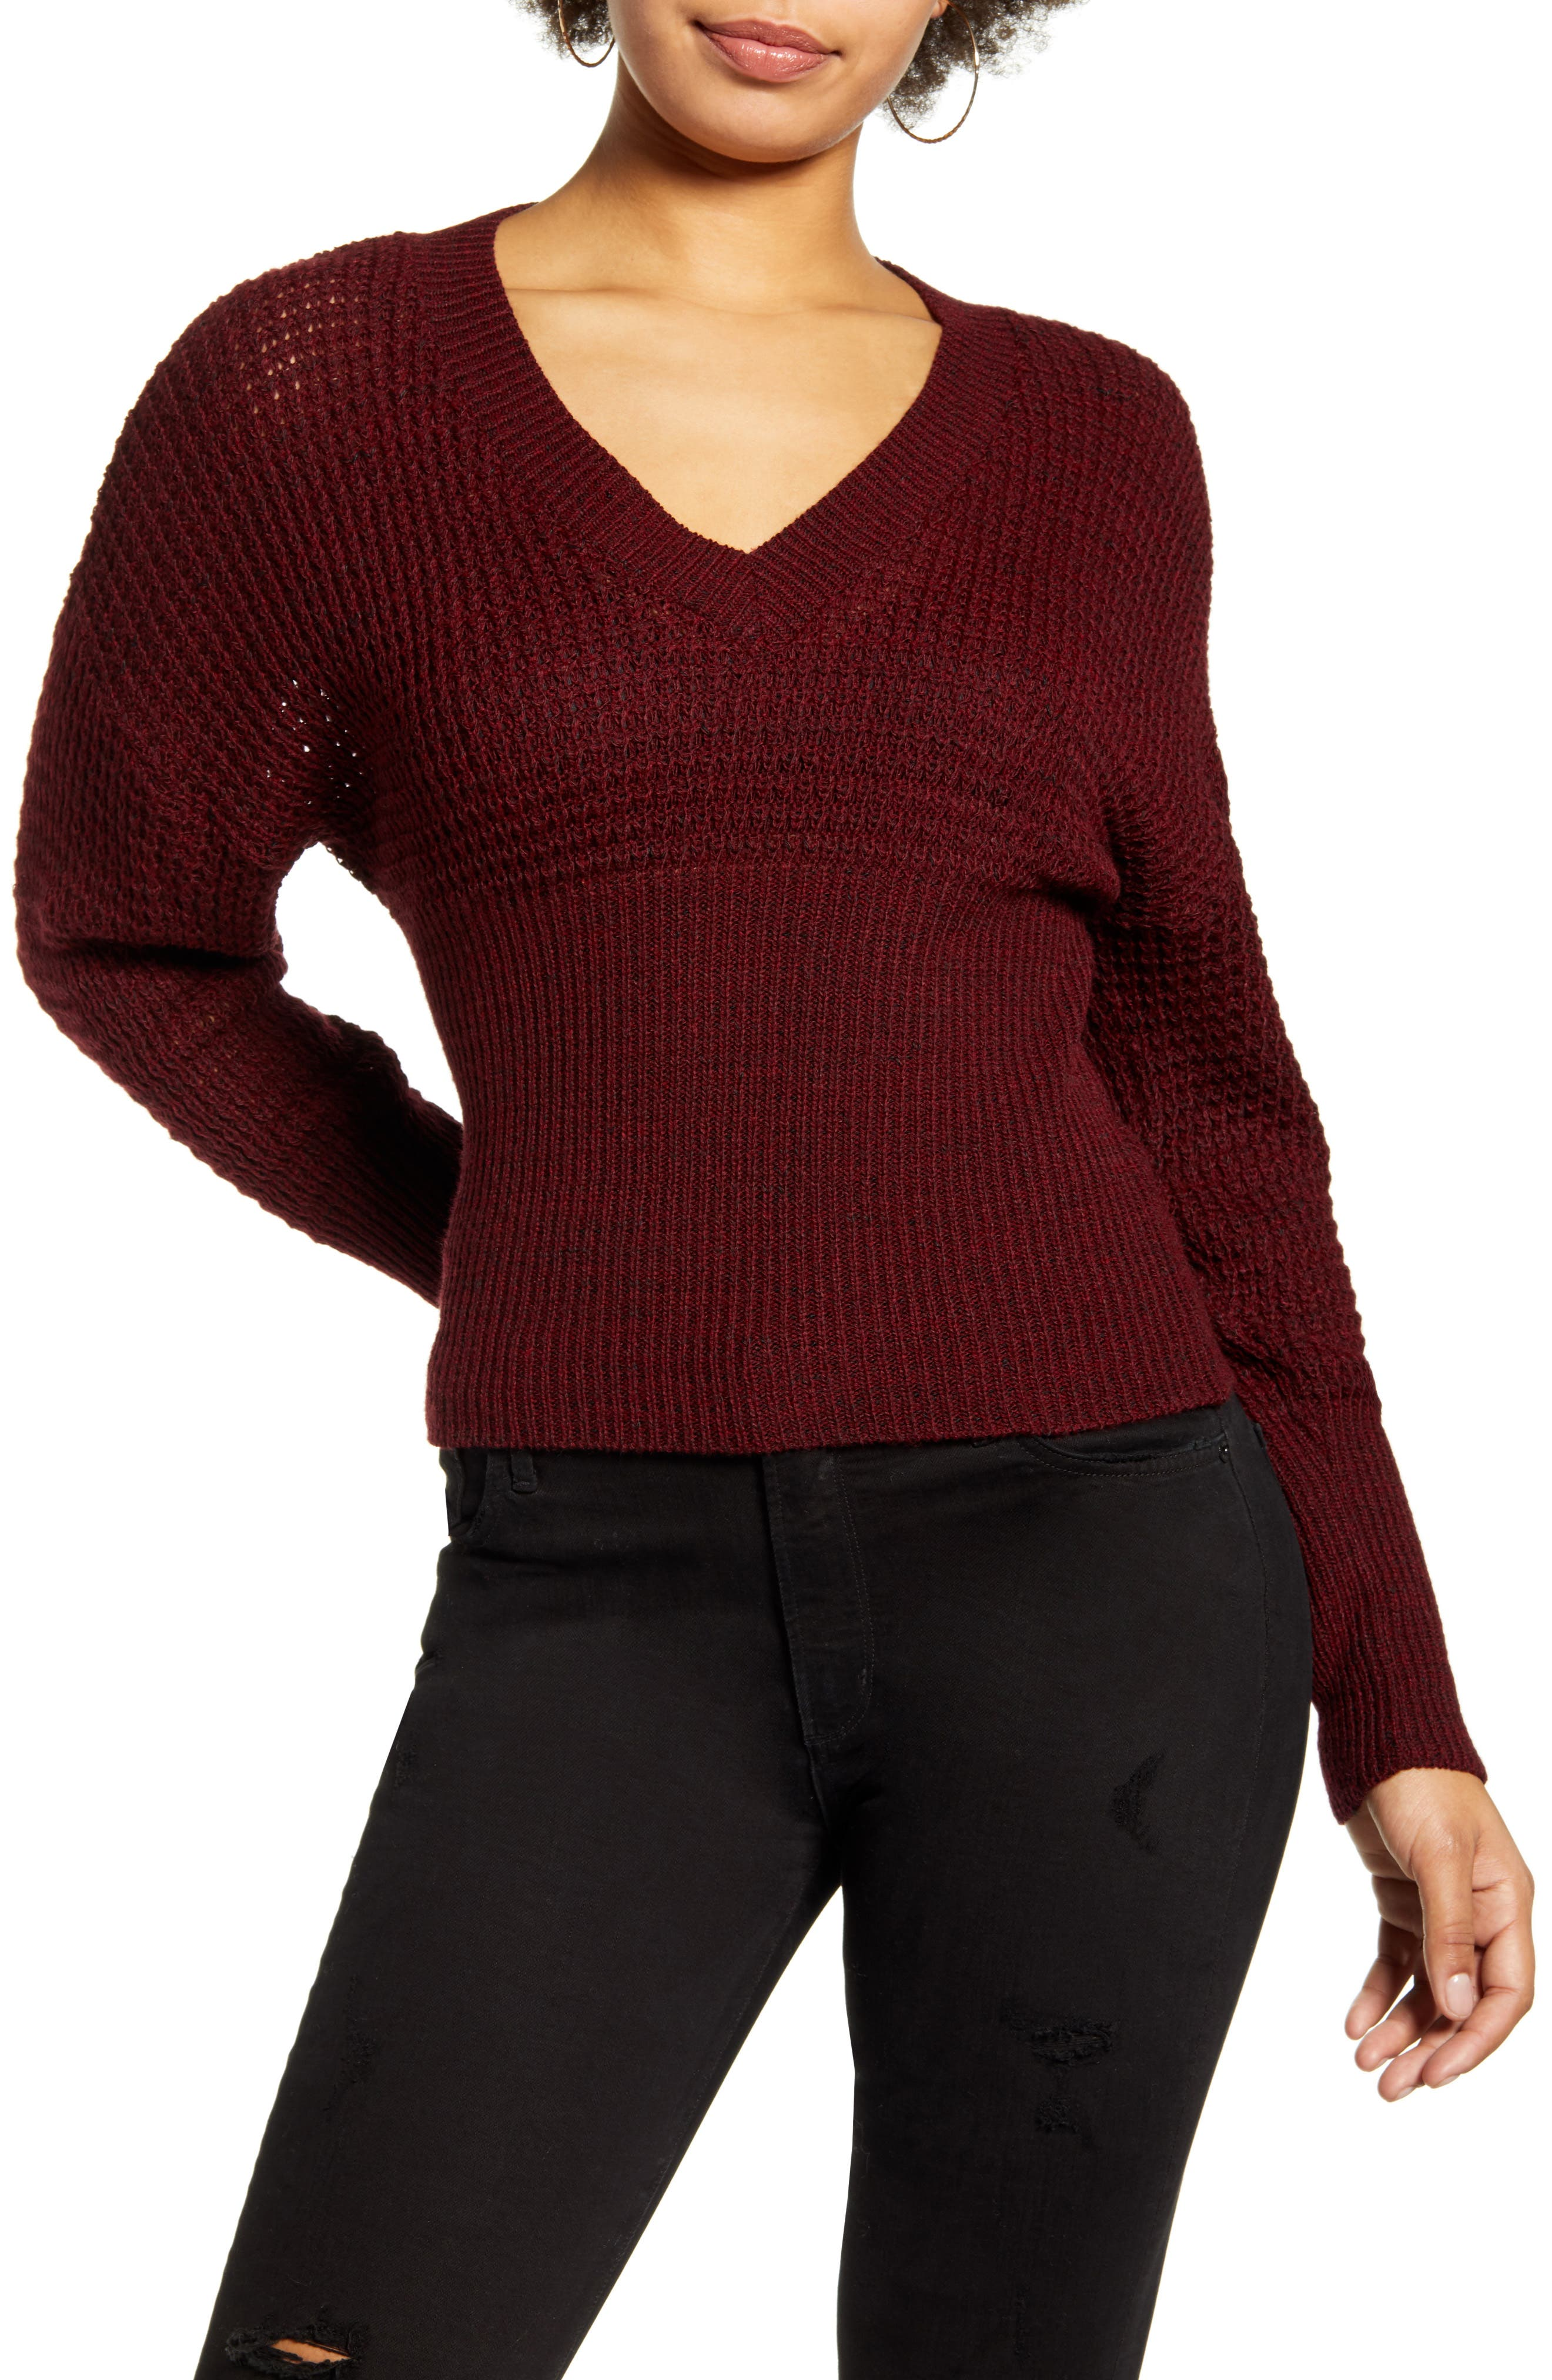 1930s Style Blouses, Shirts, Tops | Vintage Blouses Womens Leith Dolman Sleeve V-Neck Sweater Size XX-Small - Red $35.40 AT vintagedancer.com